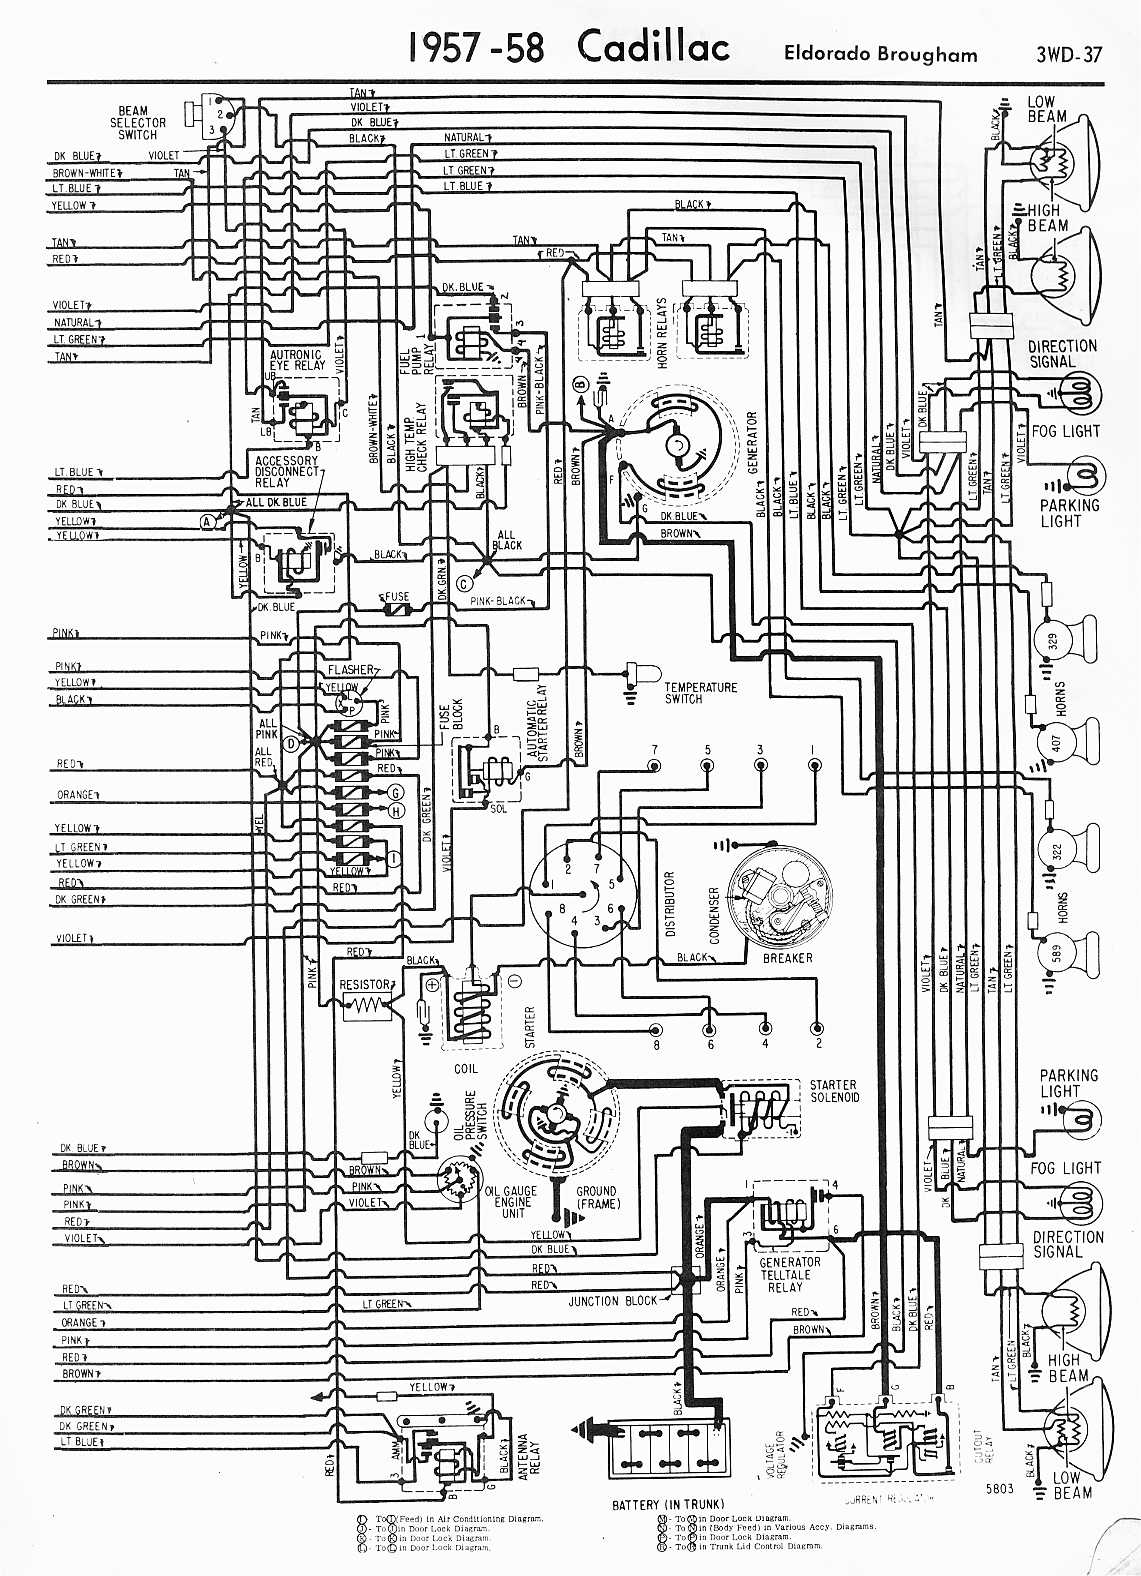 [DIAGRAM_34OR]  Cadillac Wiring Diagrams: 1957-1965 | Cadillac Electrical Wiring Diagrams |  | The Old Car Manual Project